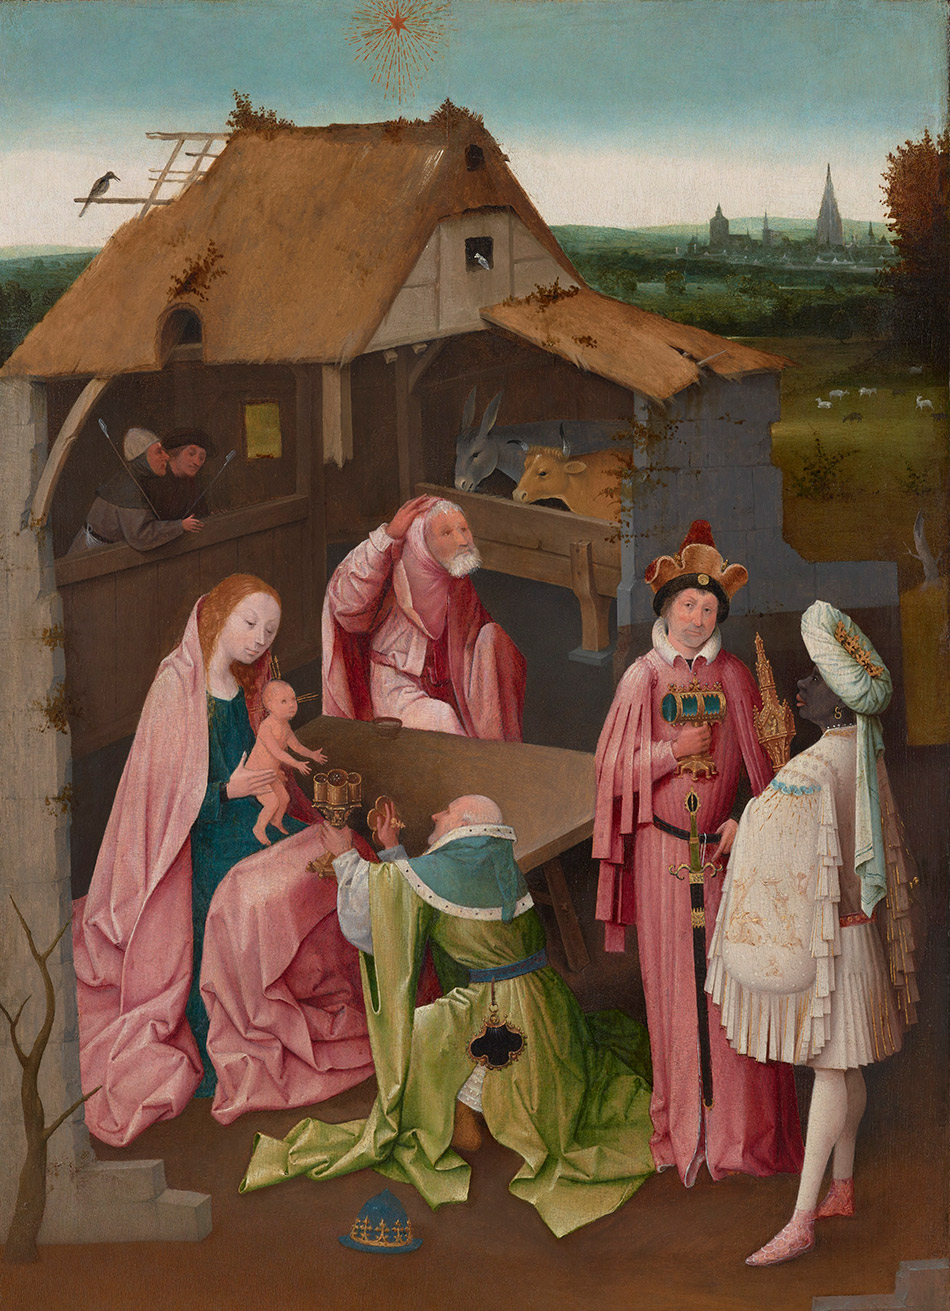 Hieronymus-Bosch_The-Adoration-of-the-Magi-_Philadelphia-Museum-of-Art_w